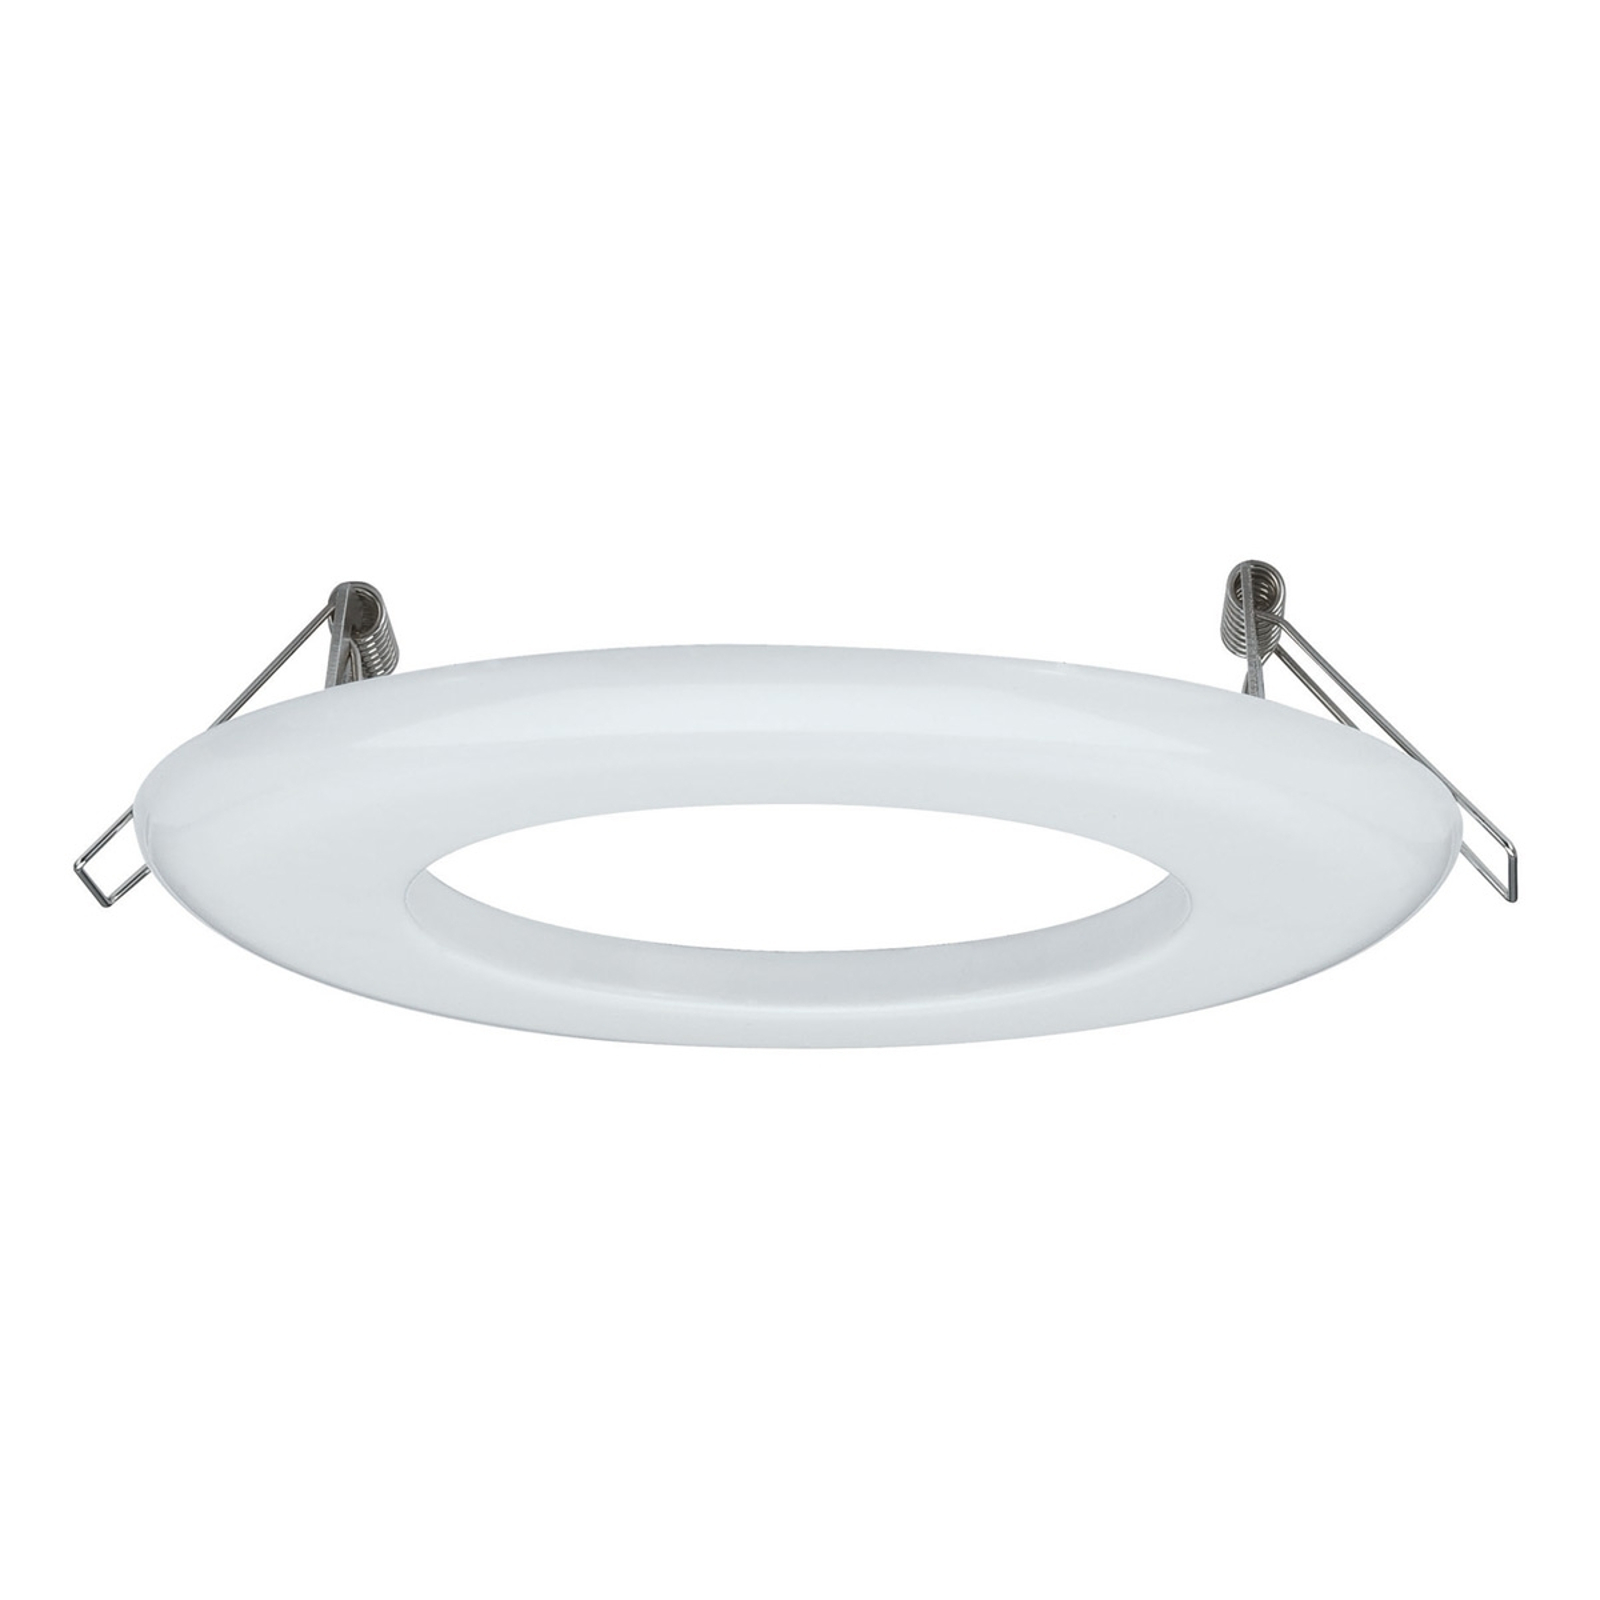 Downlight-adapter JERRY, wit